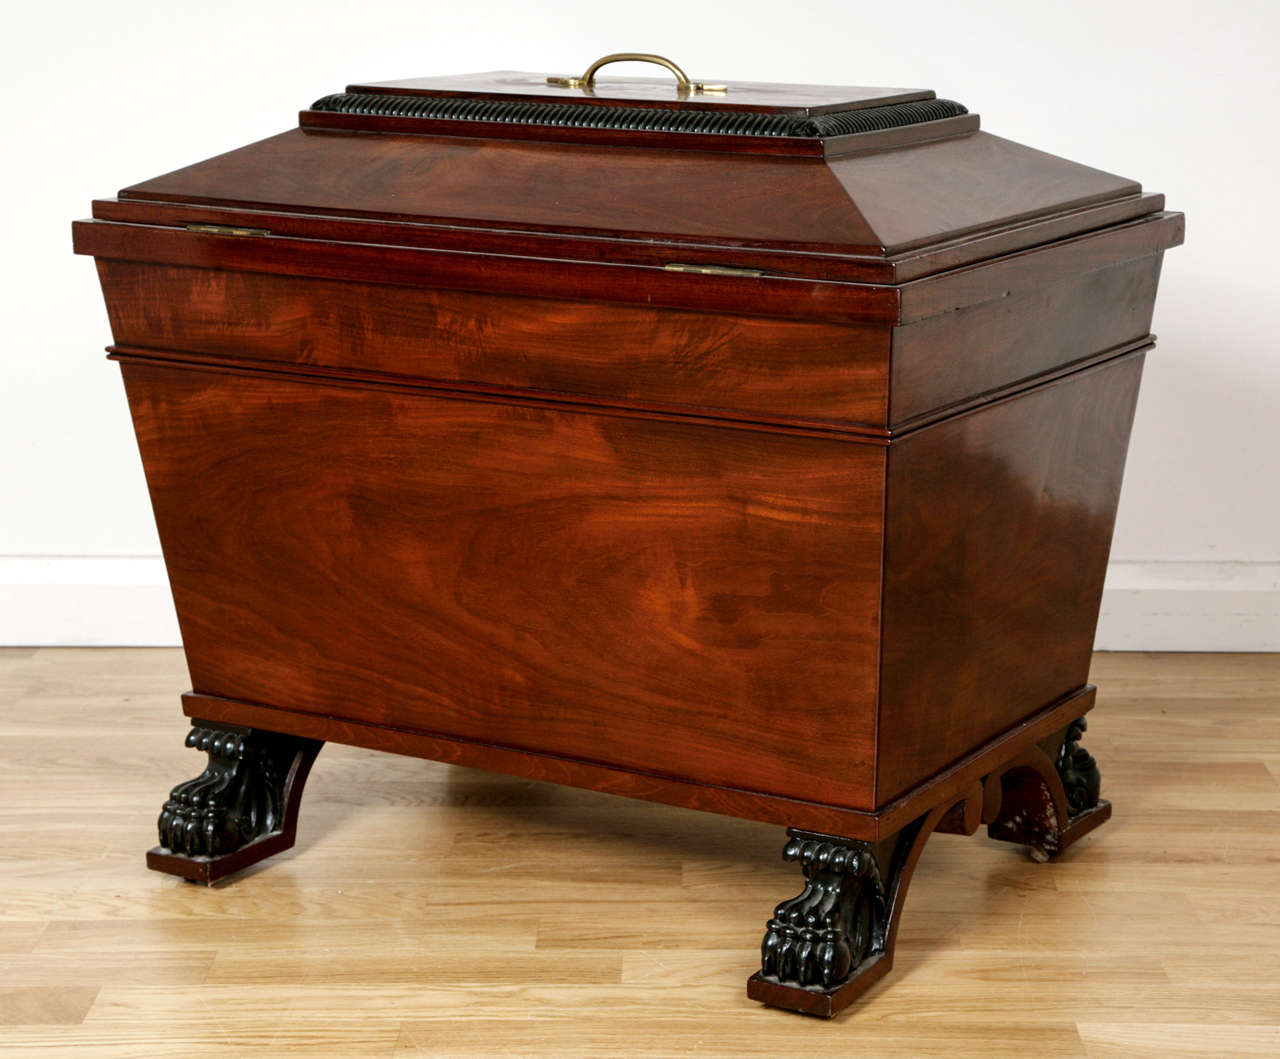 George IV Style Brass-Mounted Mahogany Wine Cooler In Excellent Condition For Sale In London, GB